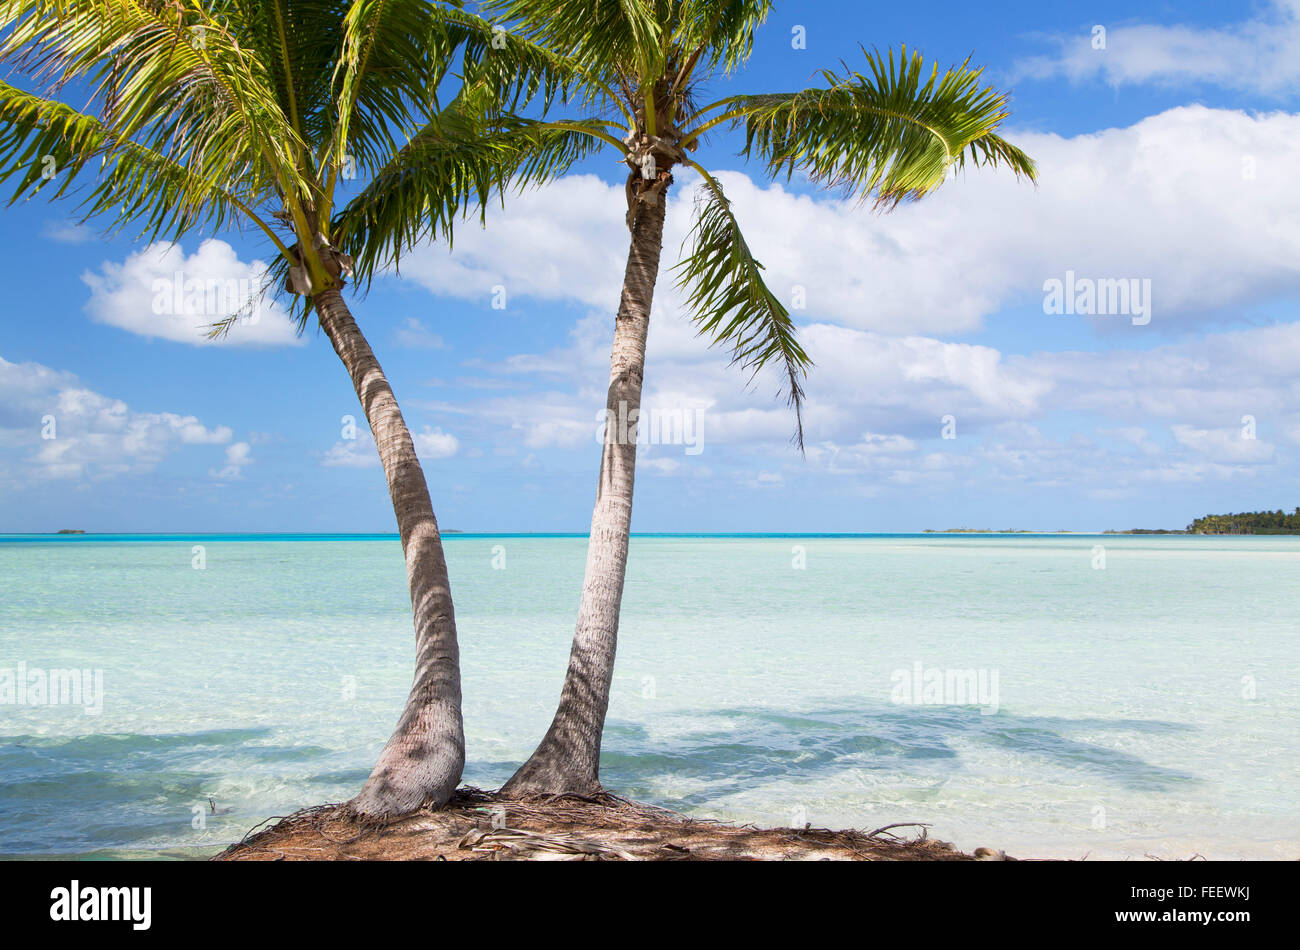 Palm trees at Blue Lagoon, Fakarava, Tuamotu Islands, French Polynesia - Stock Image